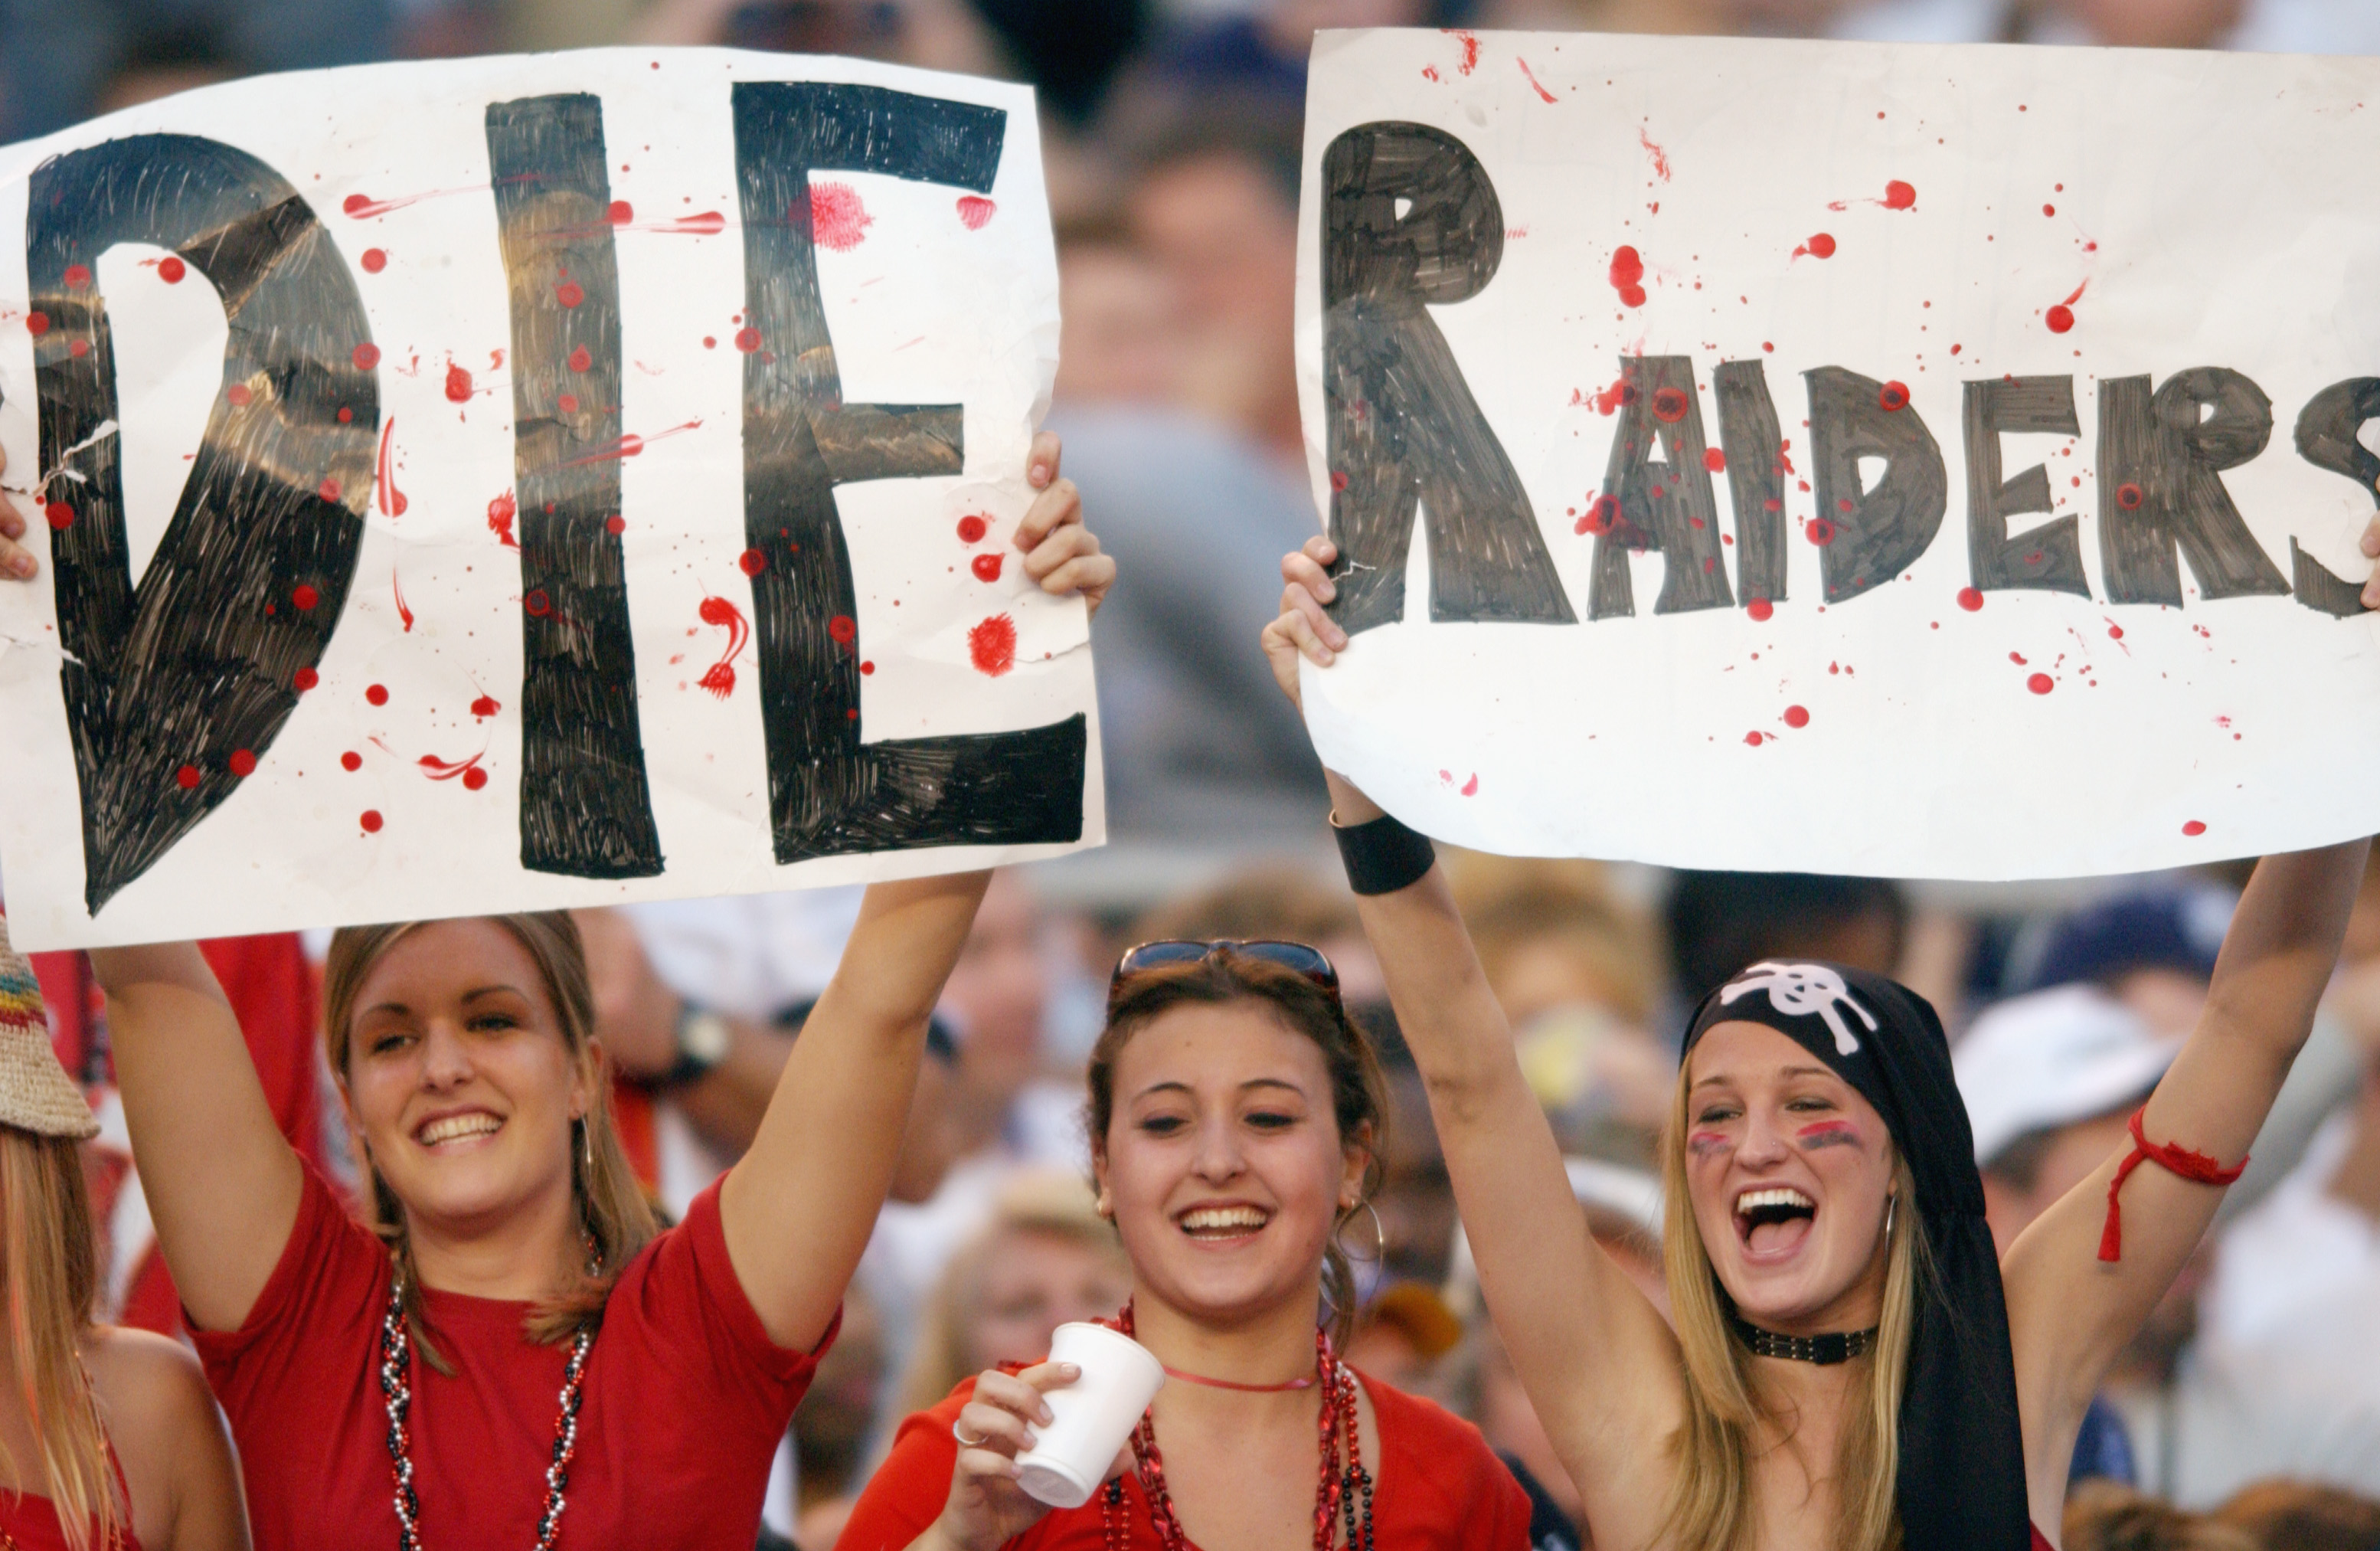 SAN DIEGO - JANUARY 26:  Three female fans of the Tampa Bay Buccaneers show their hate for the Oakland Raiders during Super Bowl XXXVII on January 26, 2003 at Qualcomm Stadium in San Diego, California. The Buccaneers defeated the Raiders 48-21. (Photo by